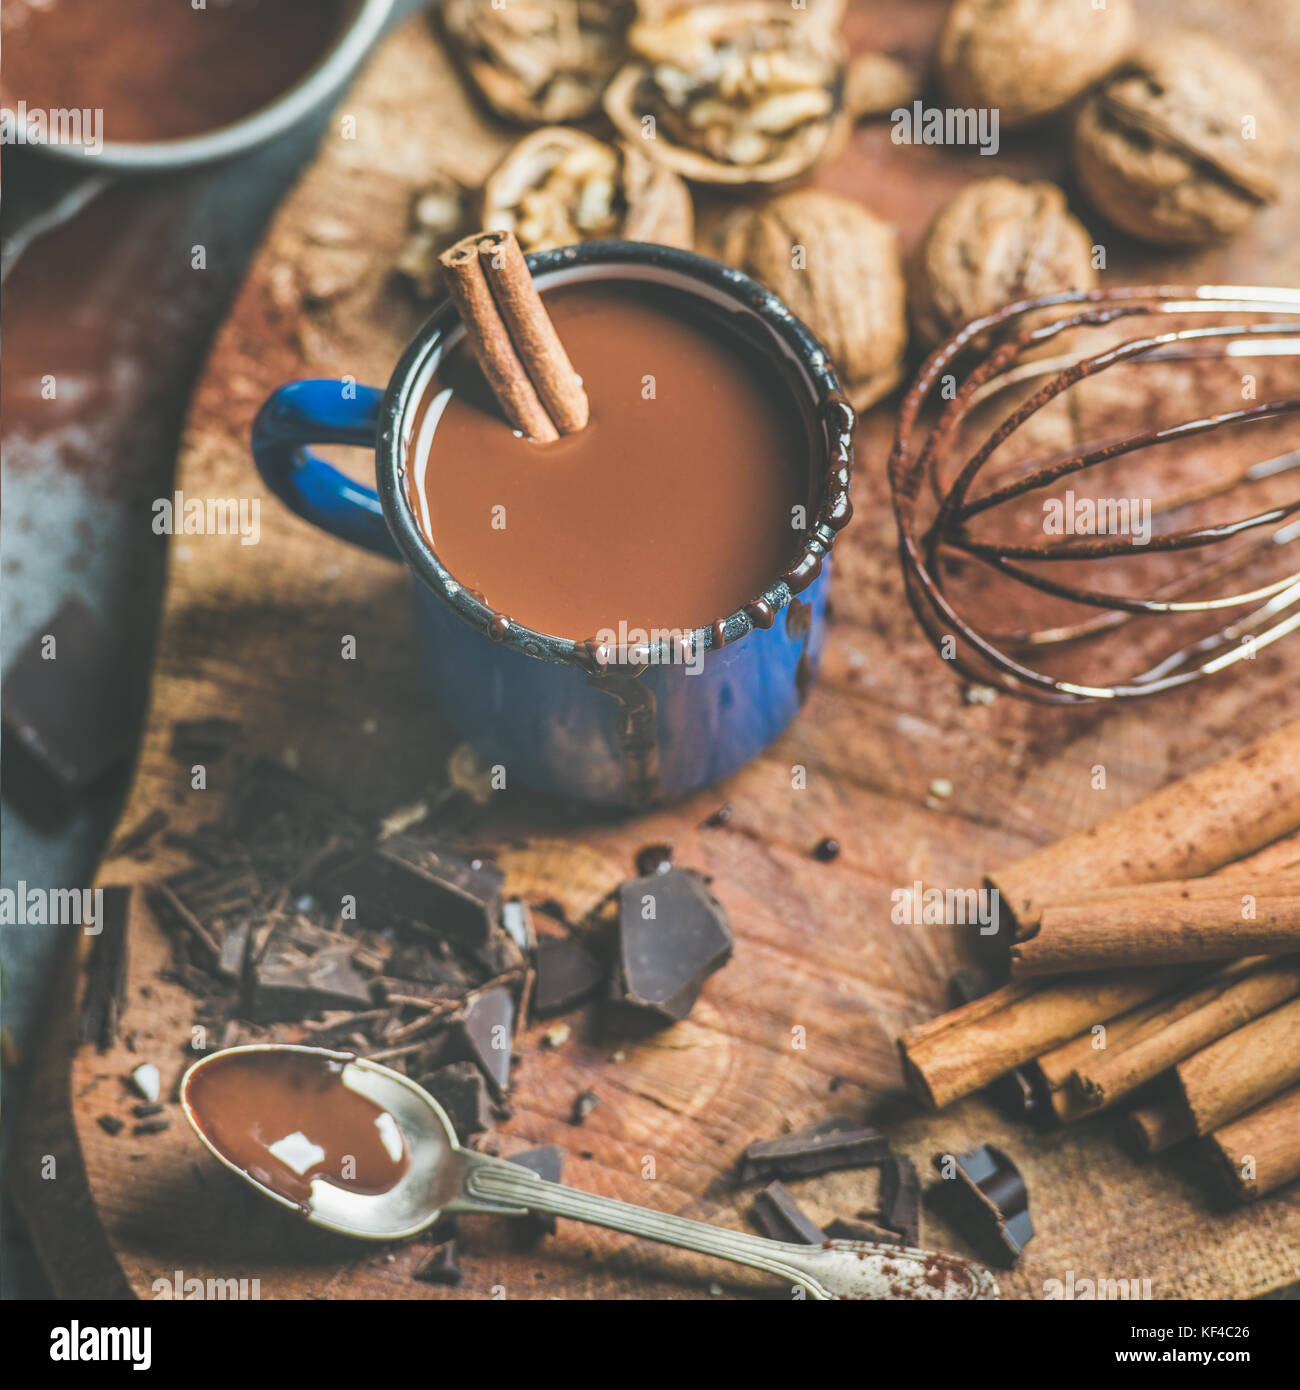 Making rich hot chocolate with cinnamon and walnuts, square crop - Stock Image